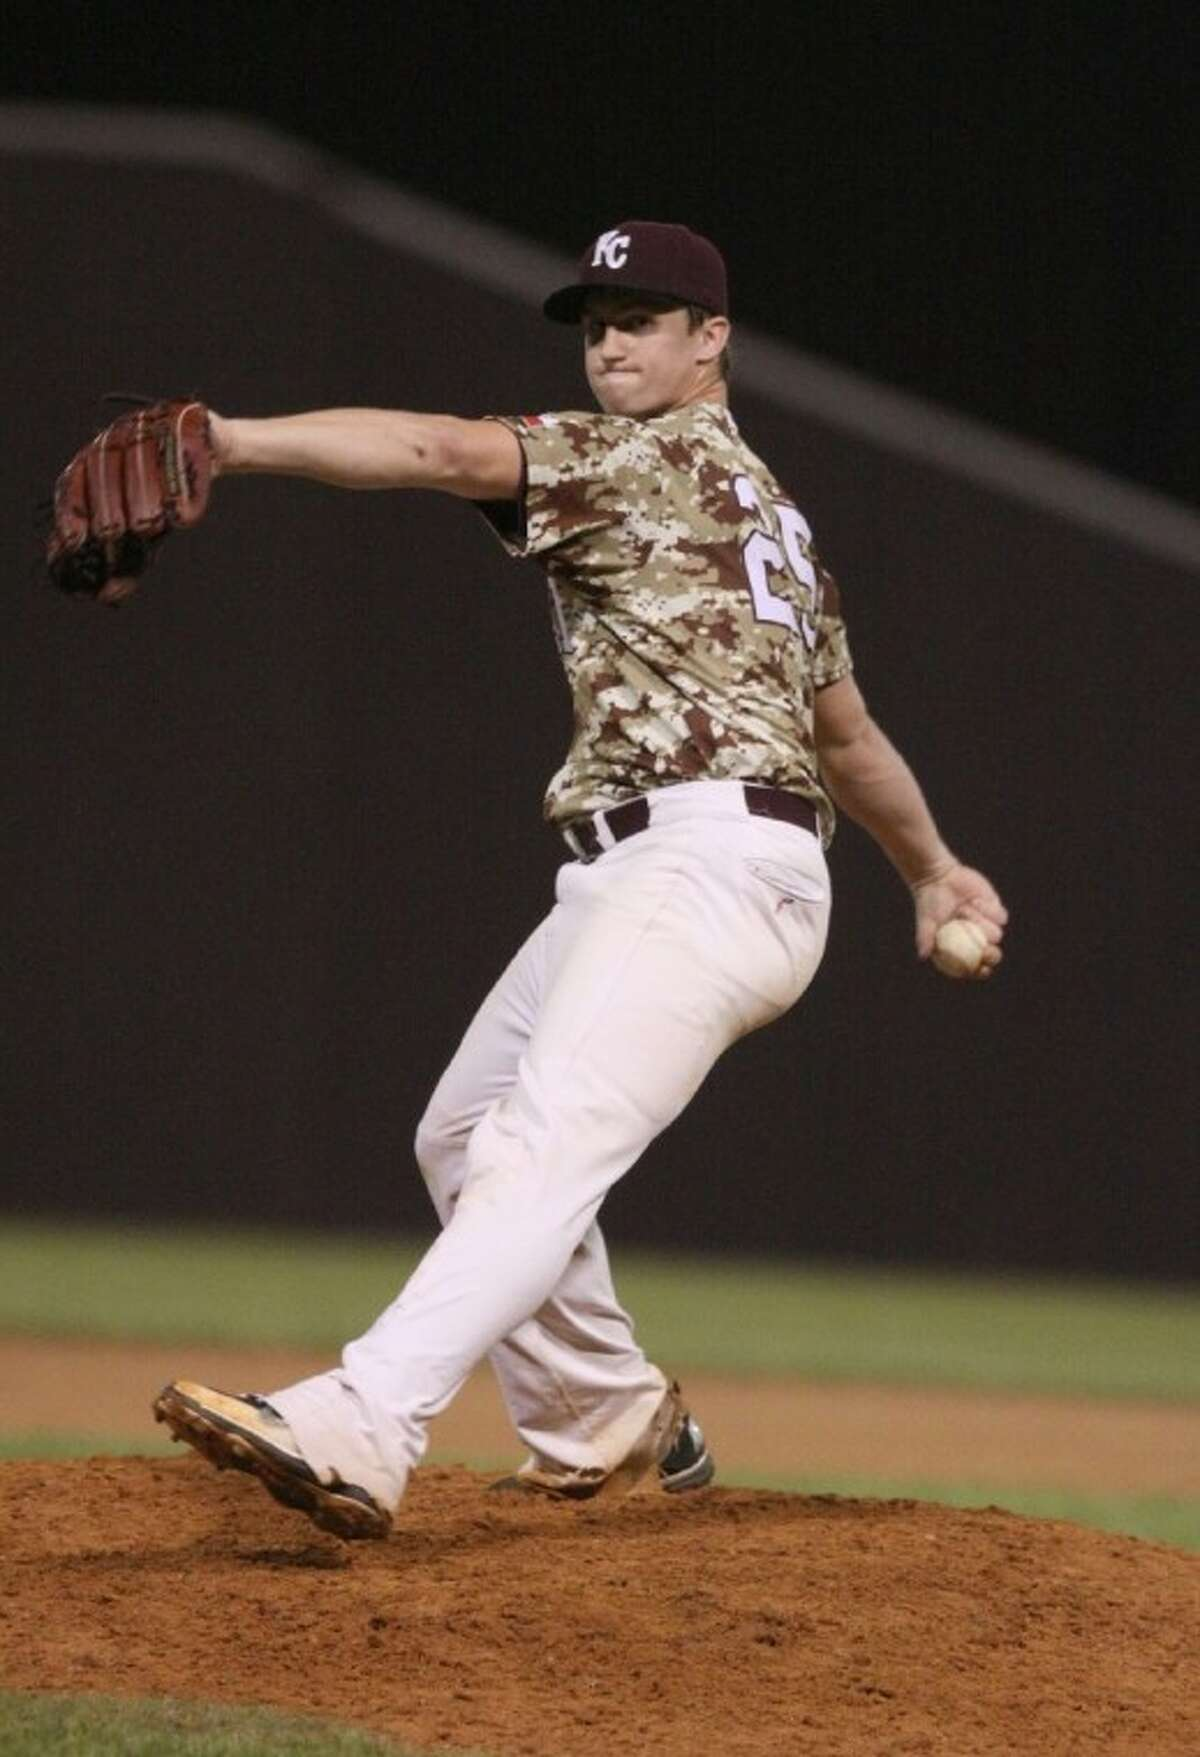 Kempner's Dominic Taccolini has made the first cut at USA Baseball's 18-under national team trials. He will travel to California in August with a chance to make the team that will travel to South Korea.